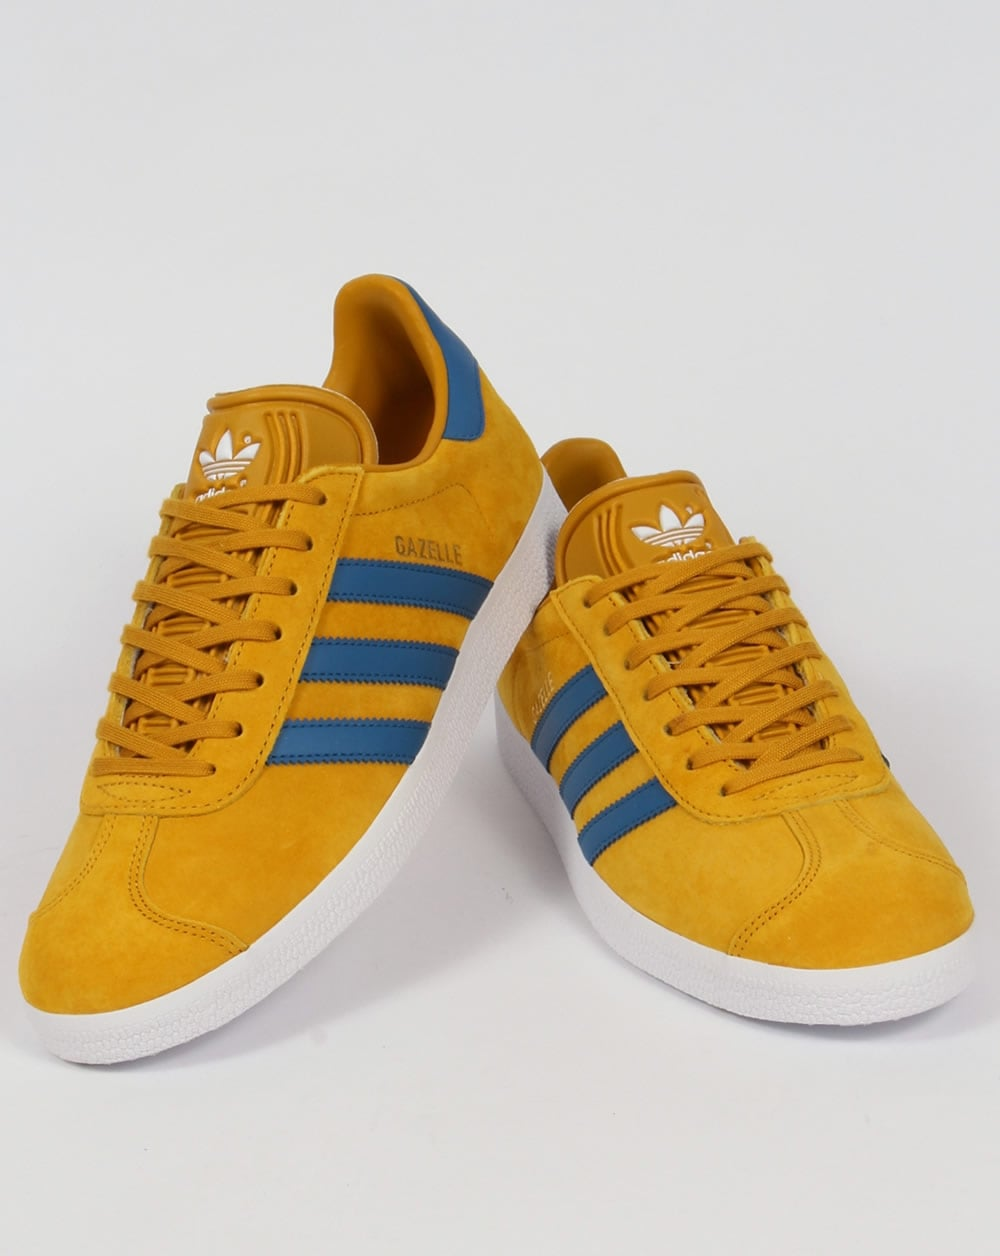 Adidas Gazelle Blue Yellow Suede Trainers Fawdingtonbmw Co Uk